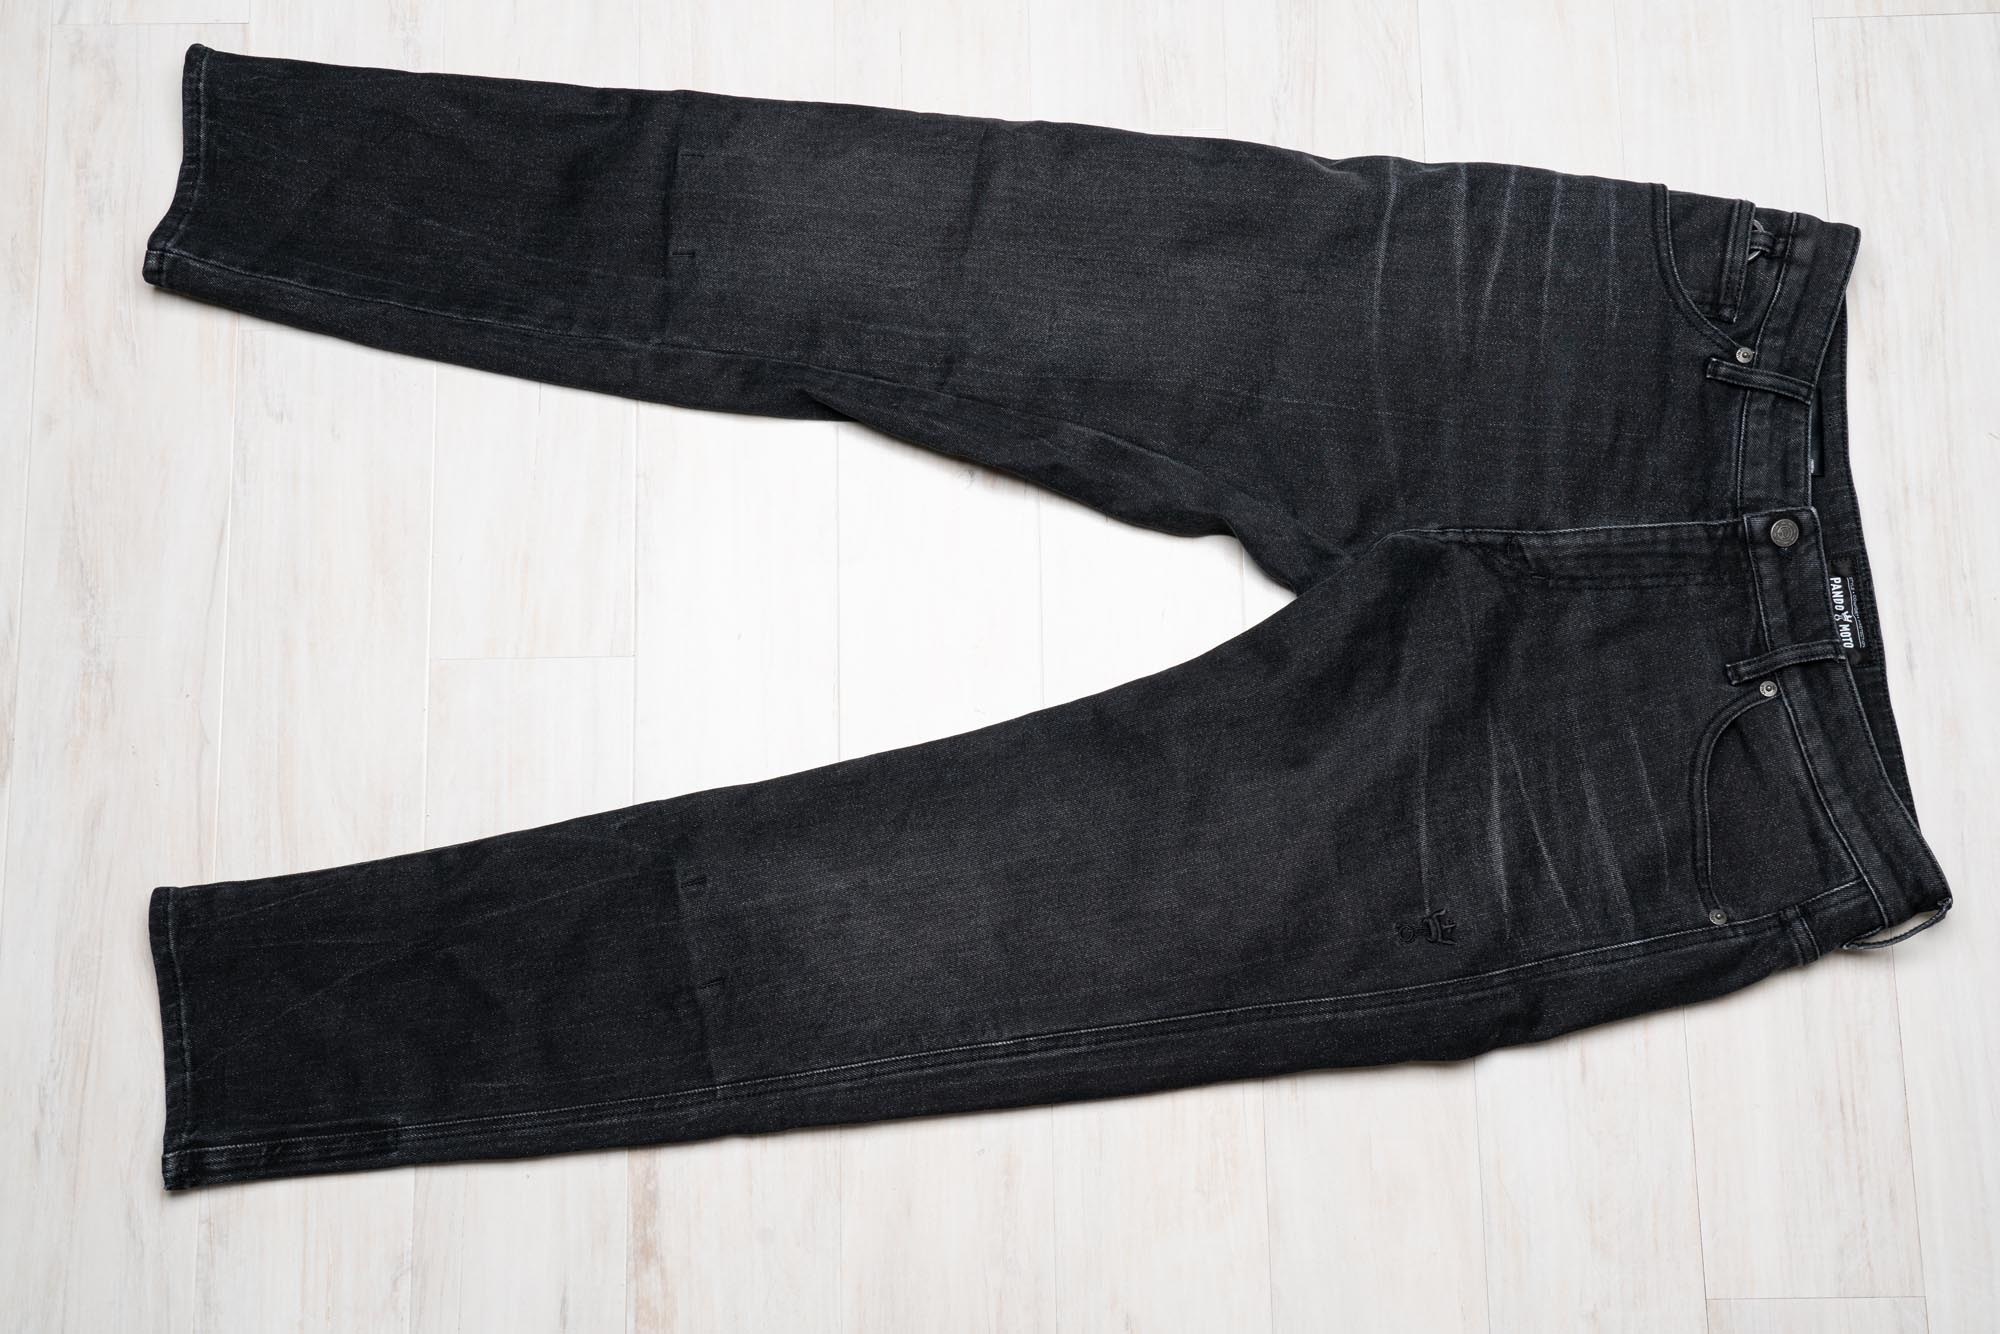 Pre-distressed black denim look